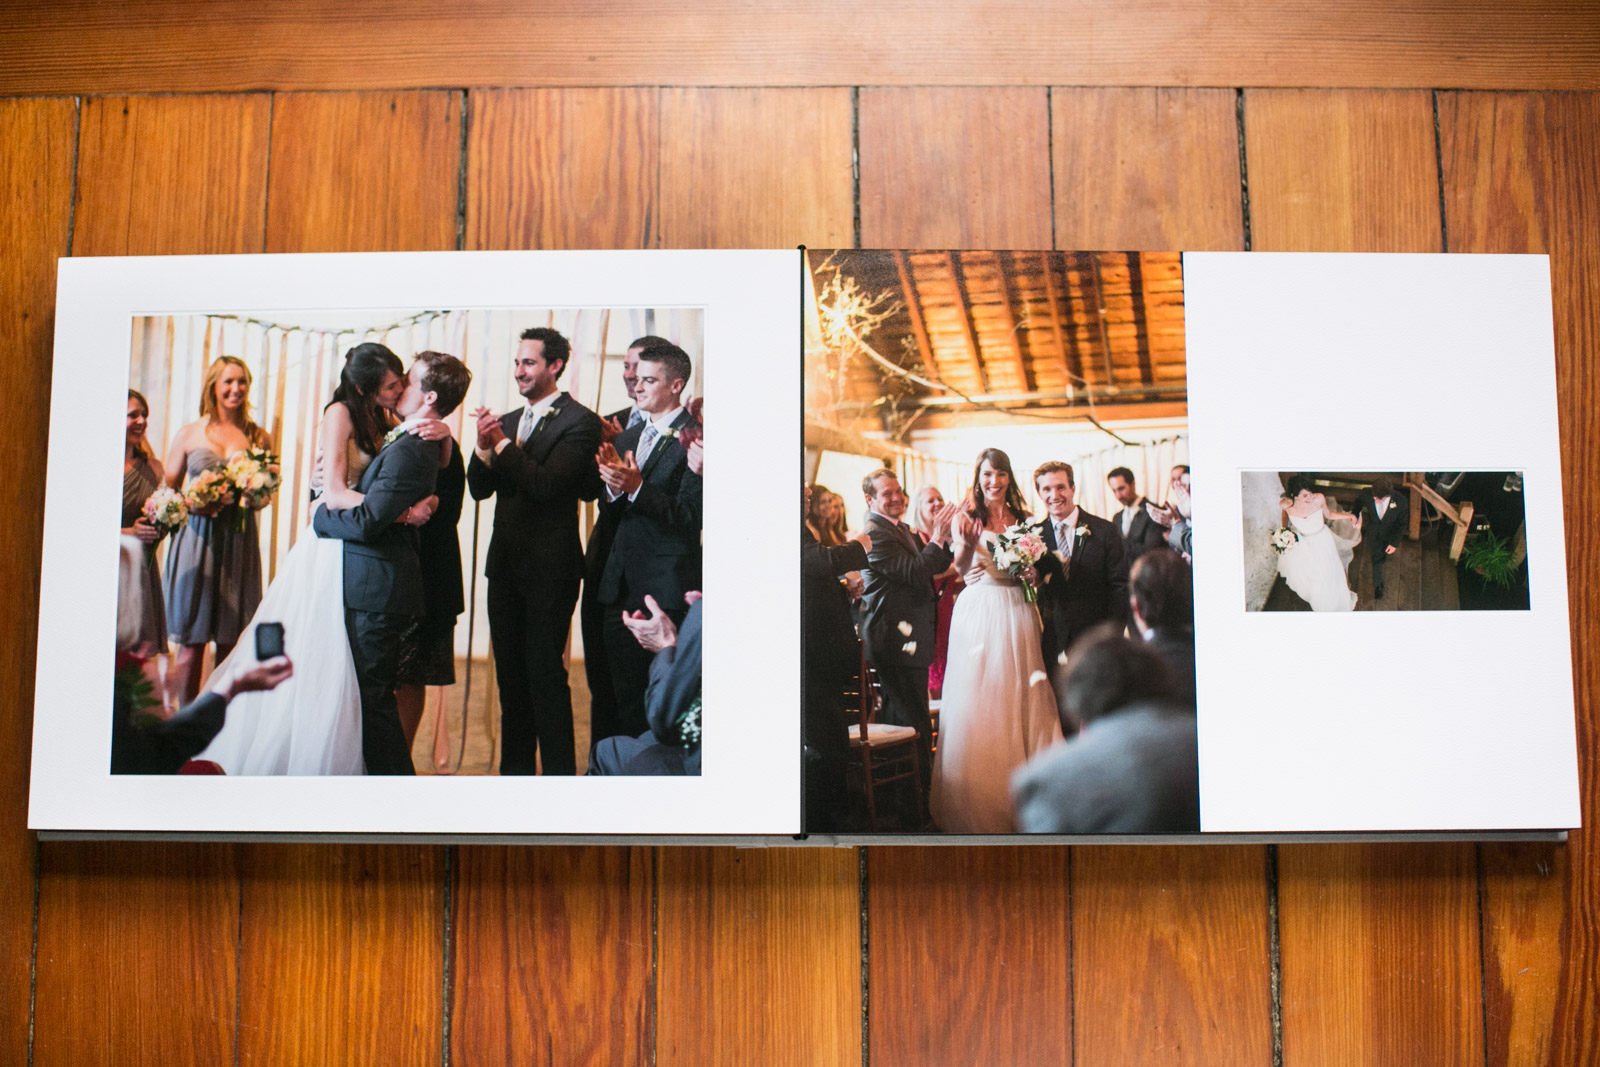 Boston matte wedding album designer Zev Fisher creates custom